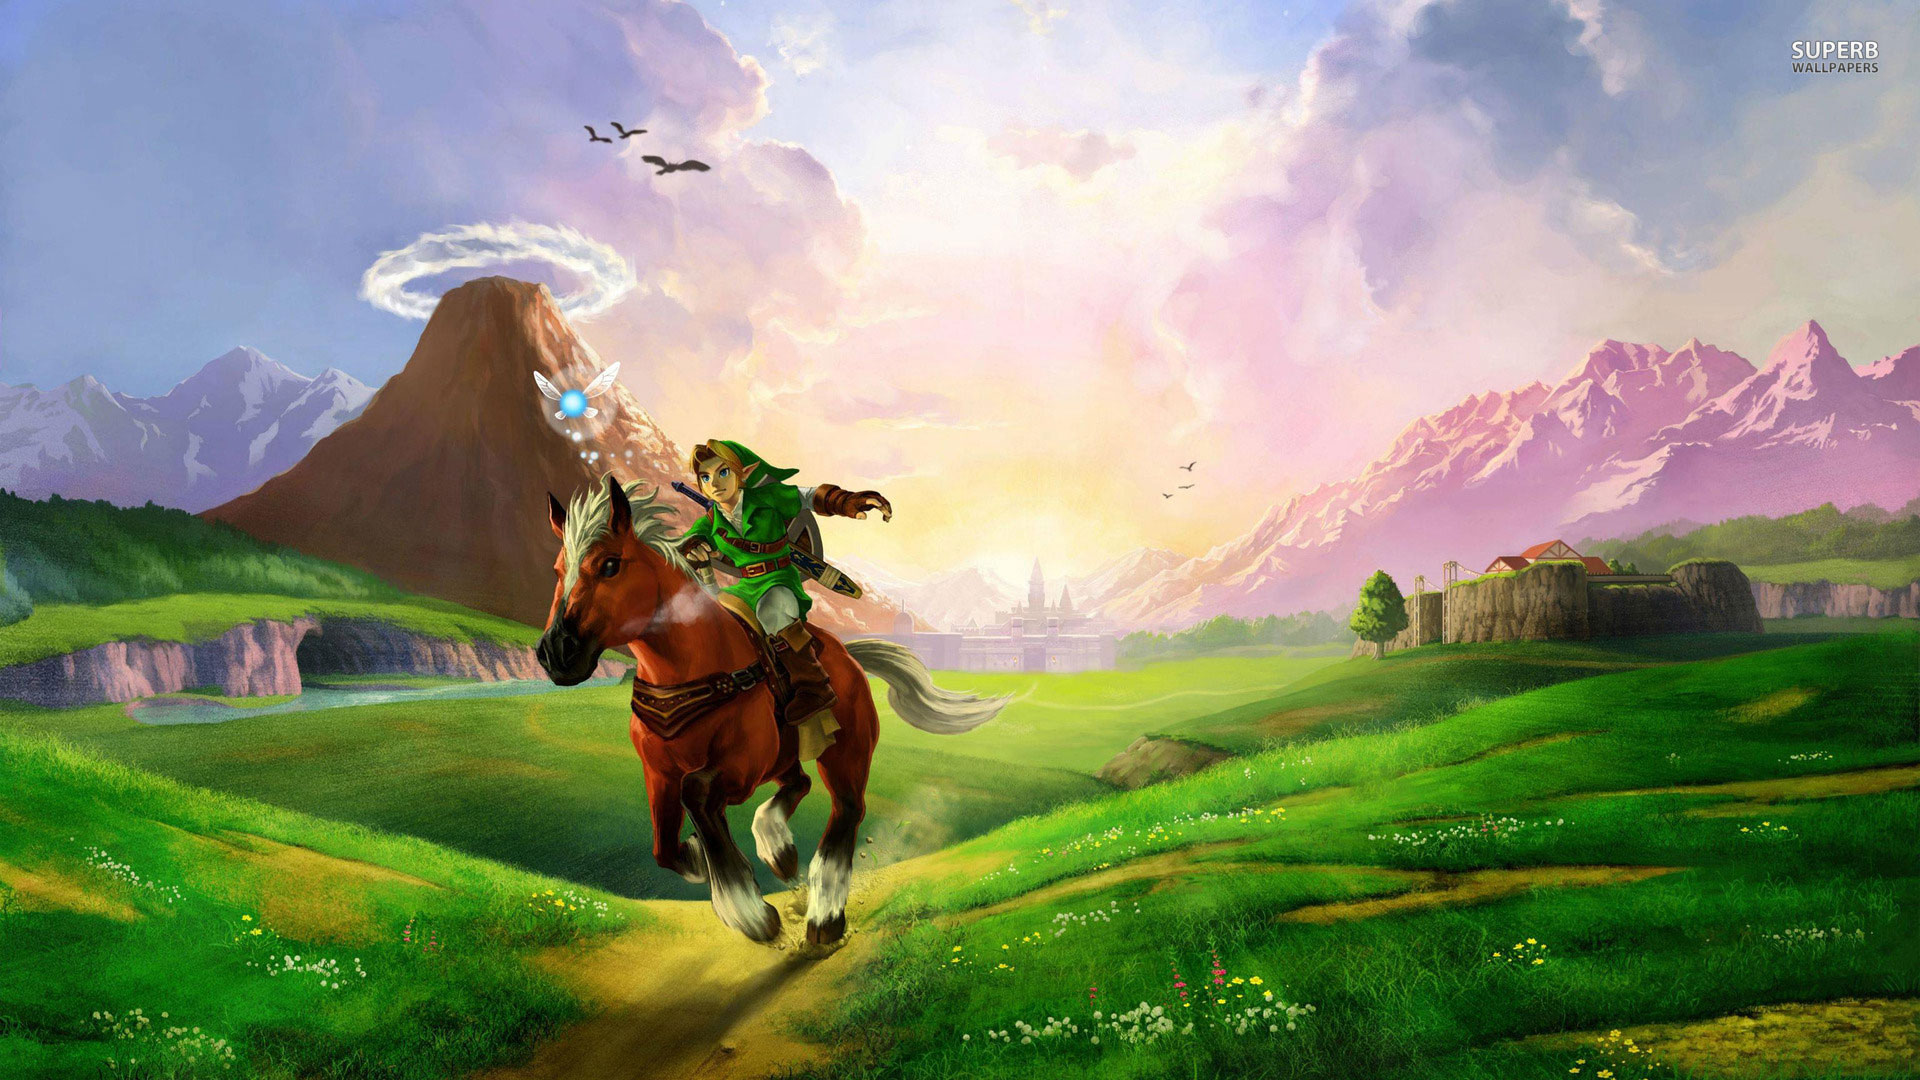 hd zelda wallpapers - photo #27